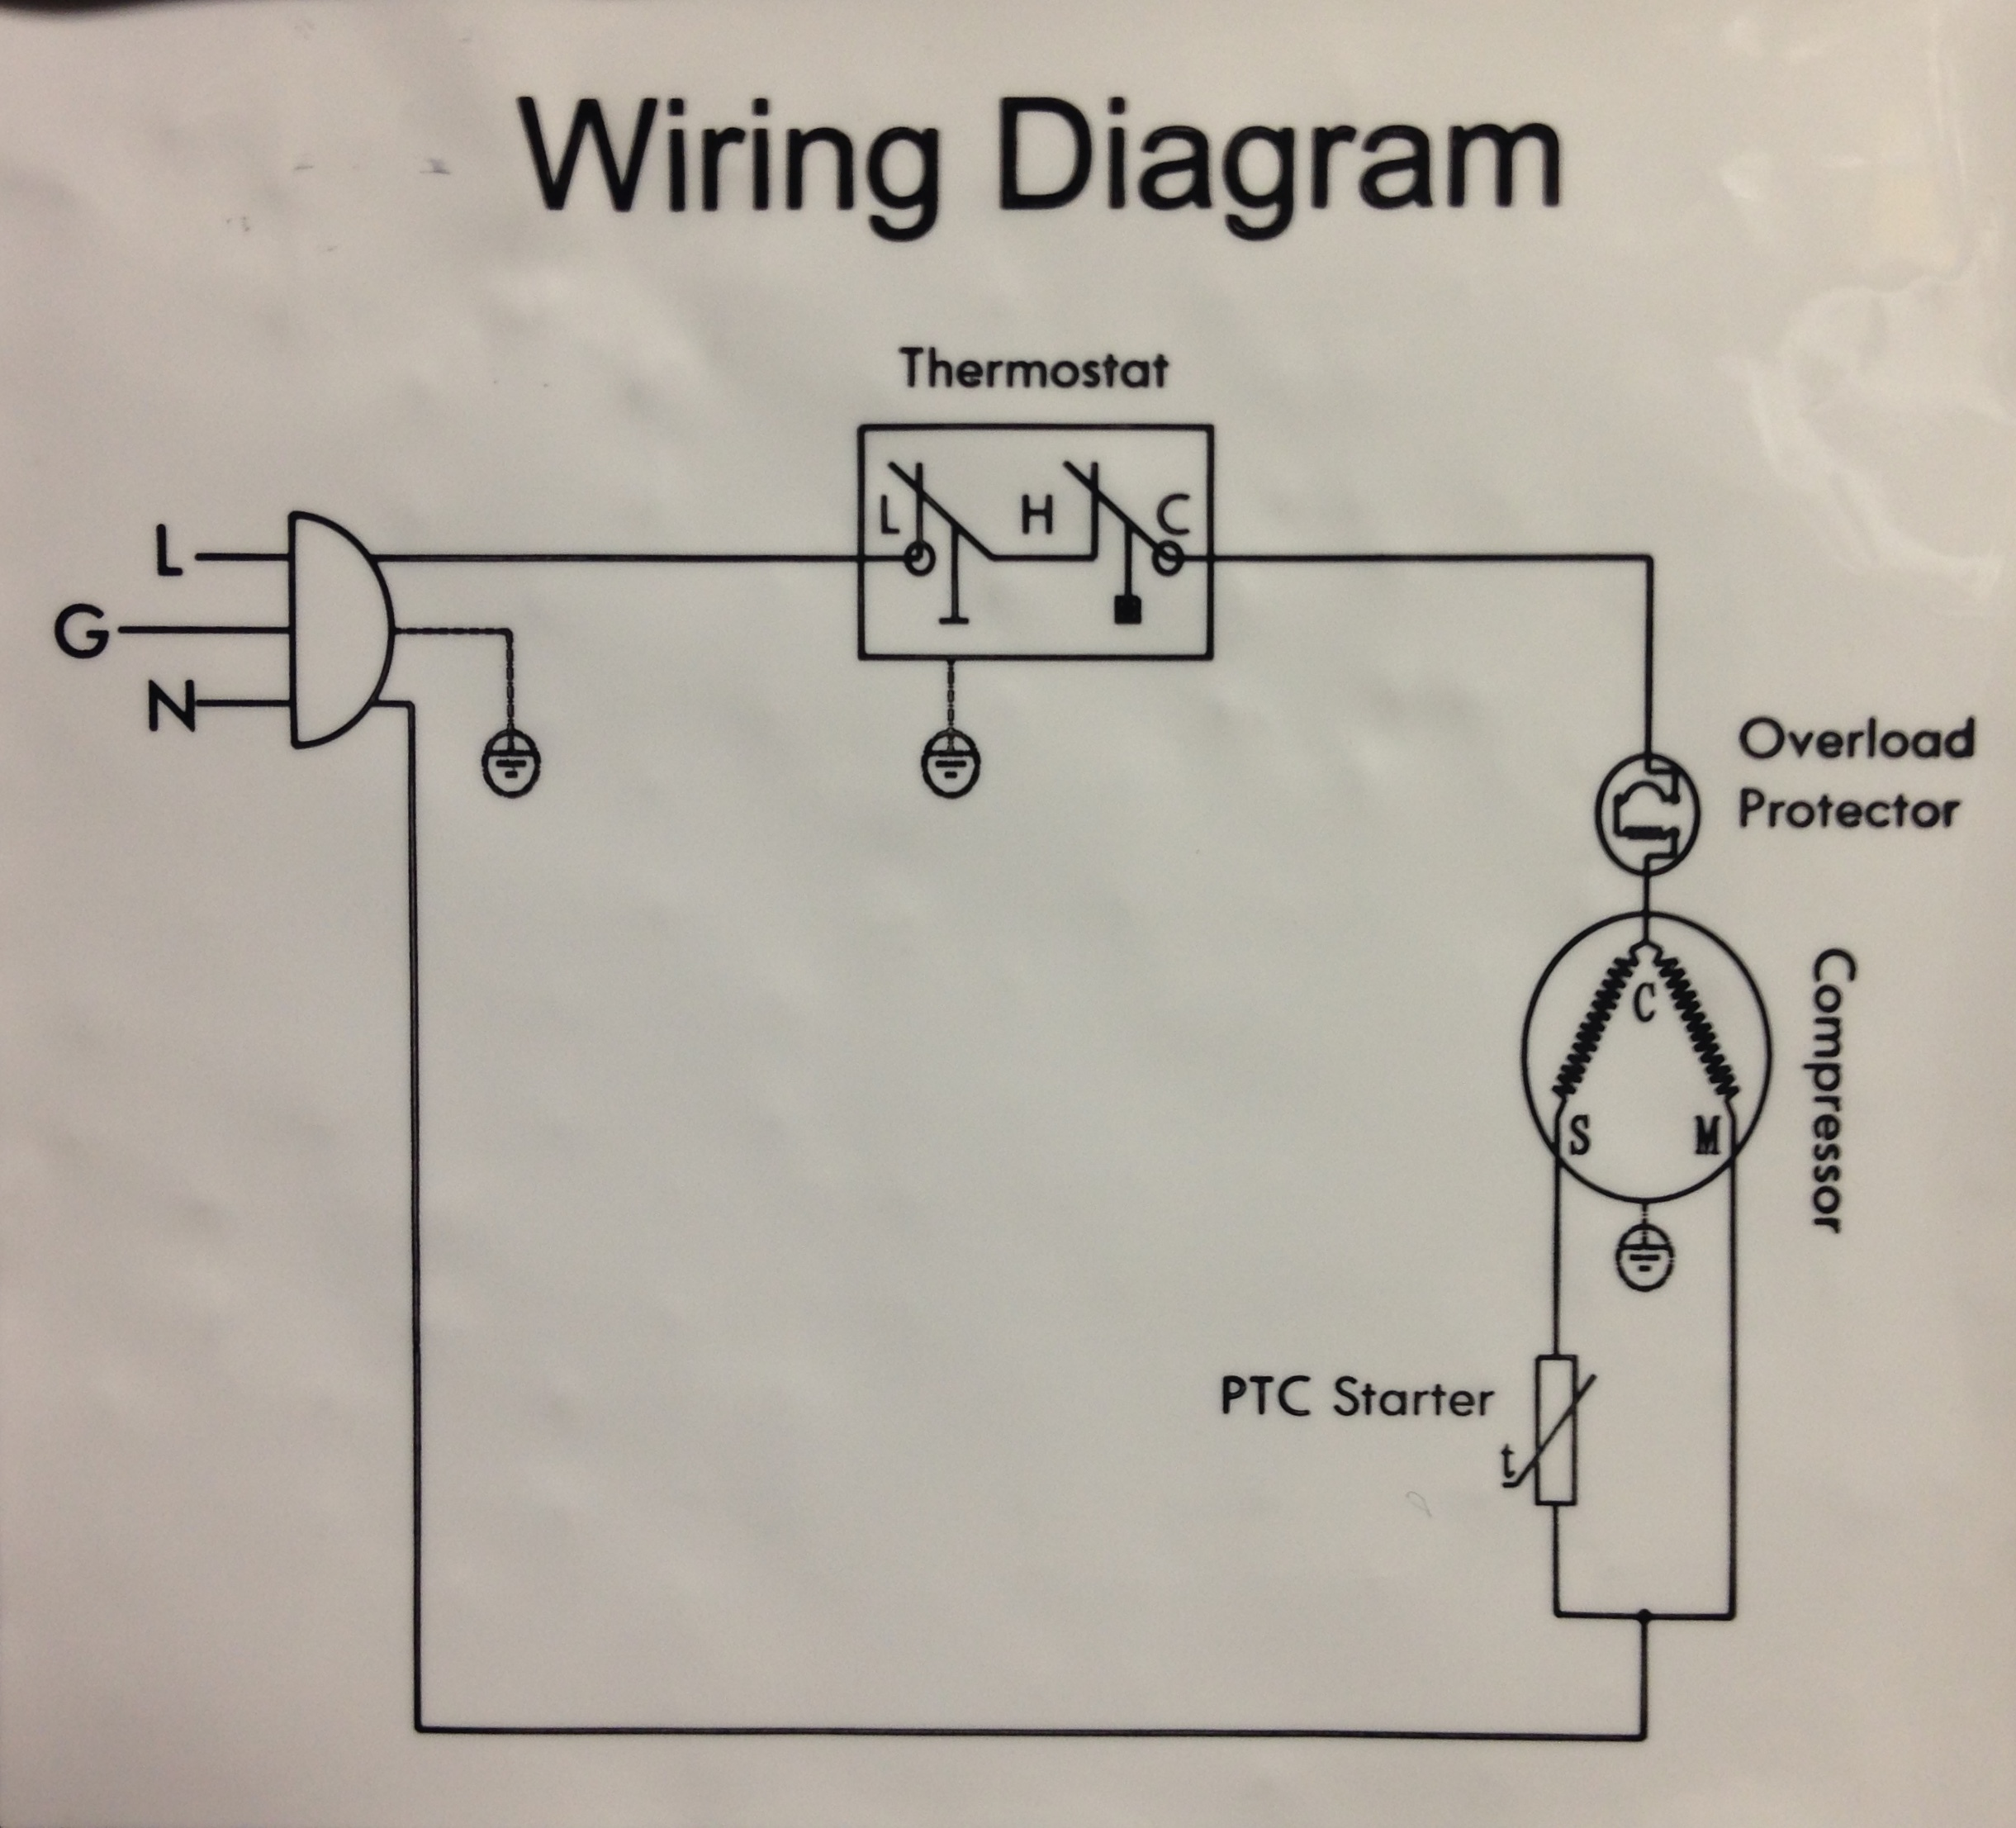 c5986337b4249150884d4e057ccb08b32fe4028e new build electronics newb diagram help fridge build brewpi pc wiring diagram at mifinder.co